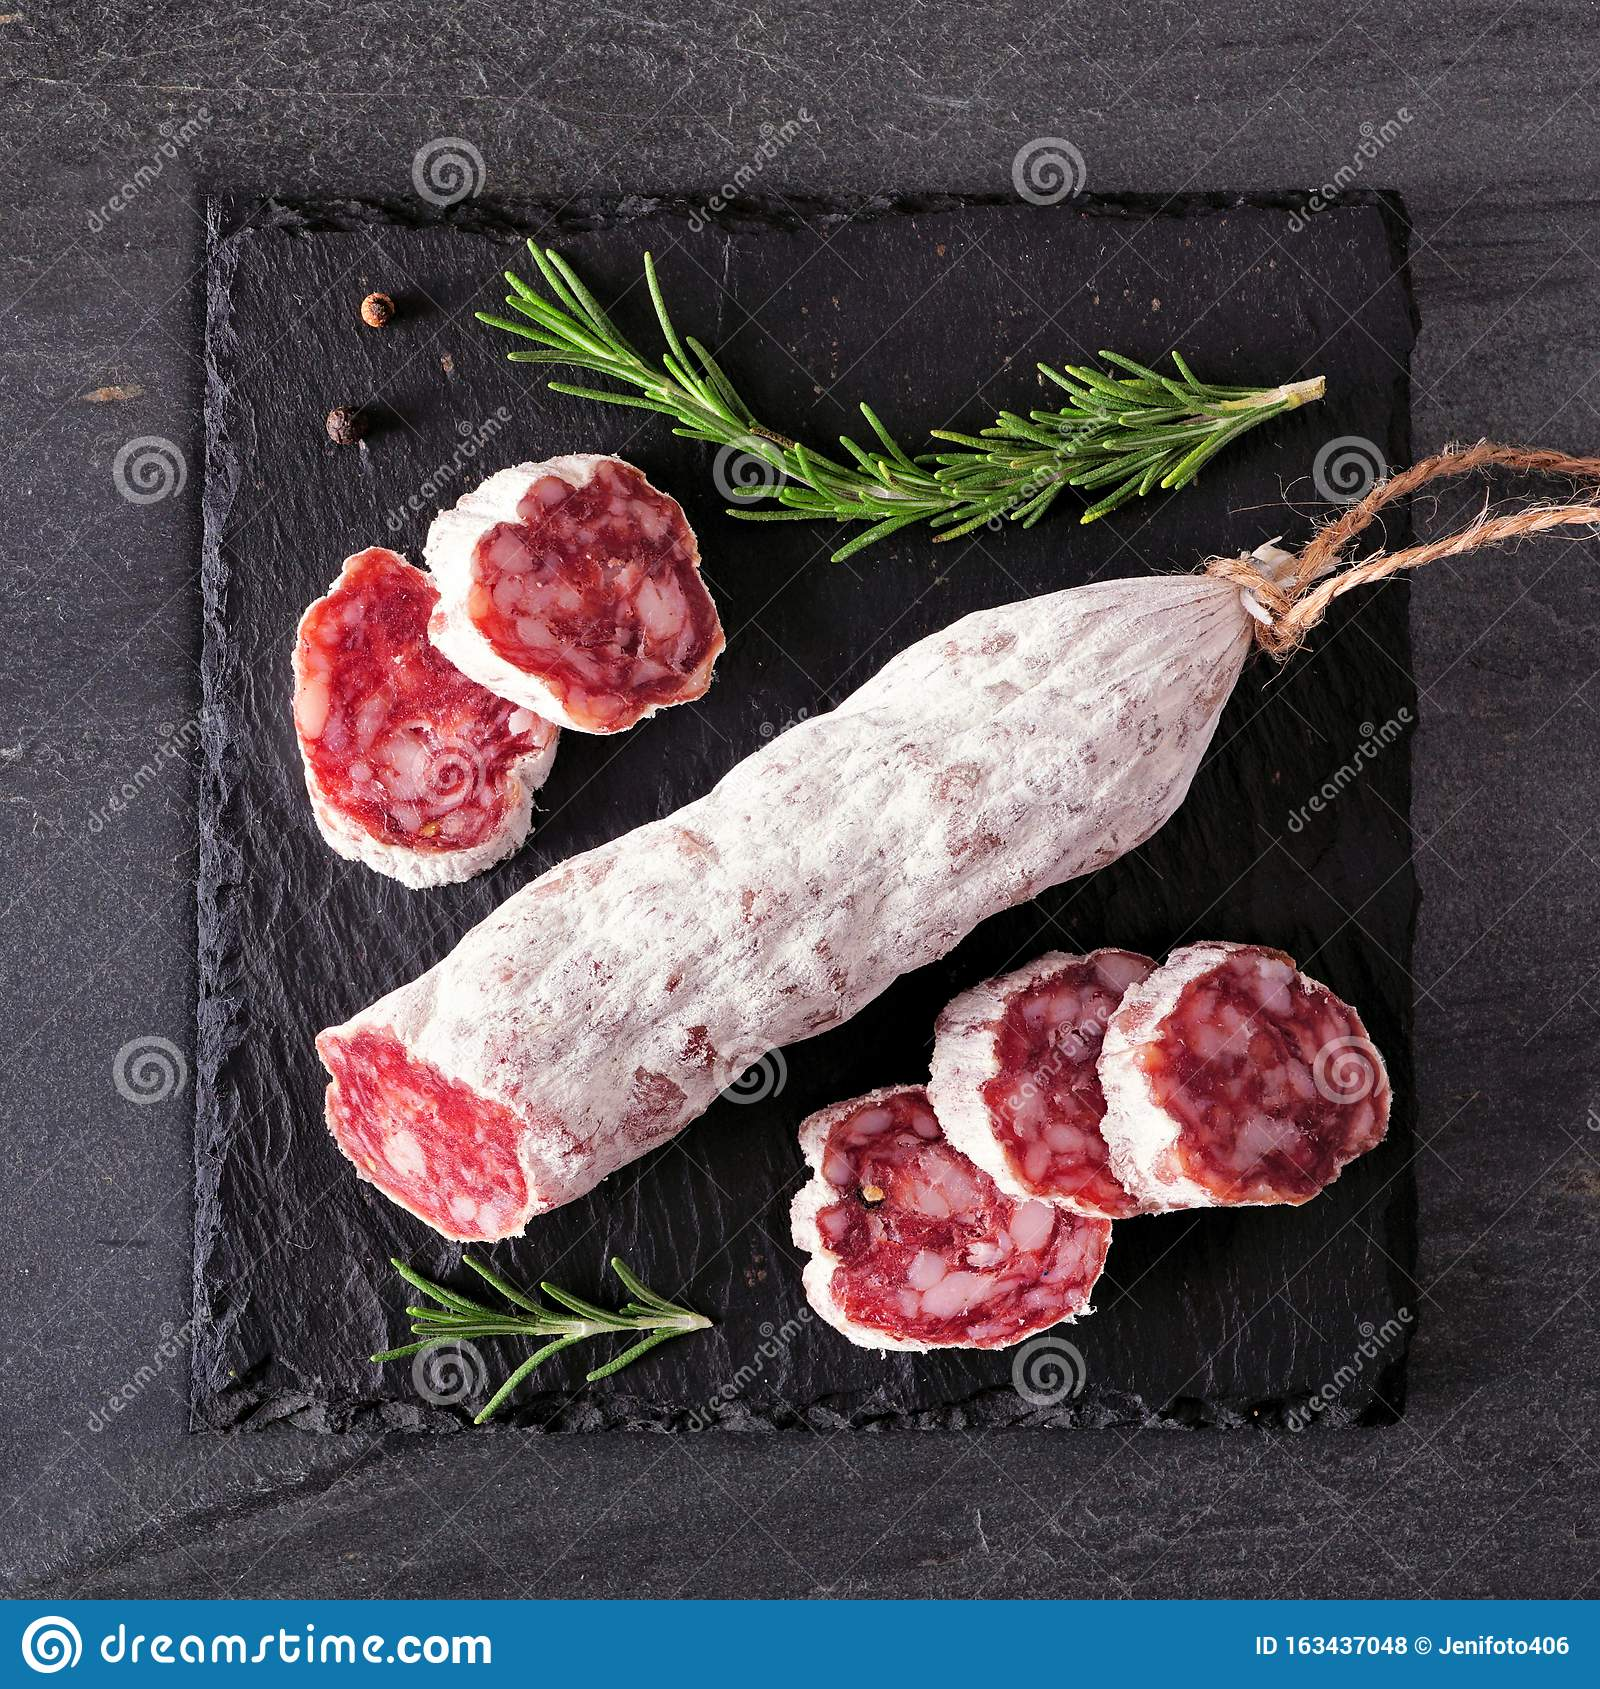 Traditional dry cured sausage, top view on a slate serving board